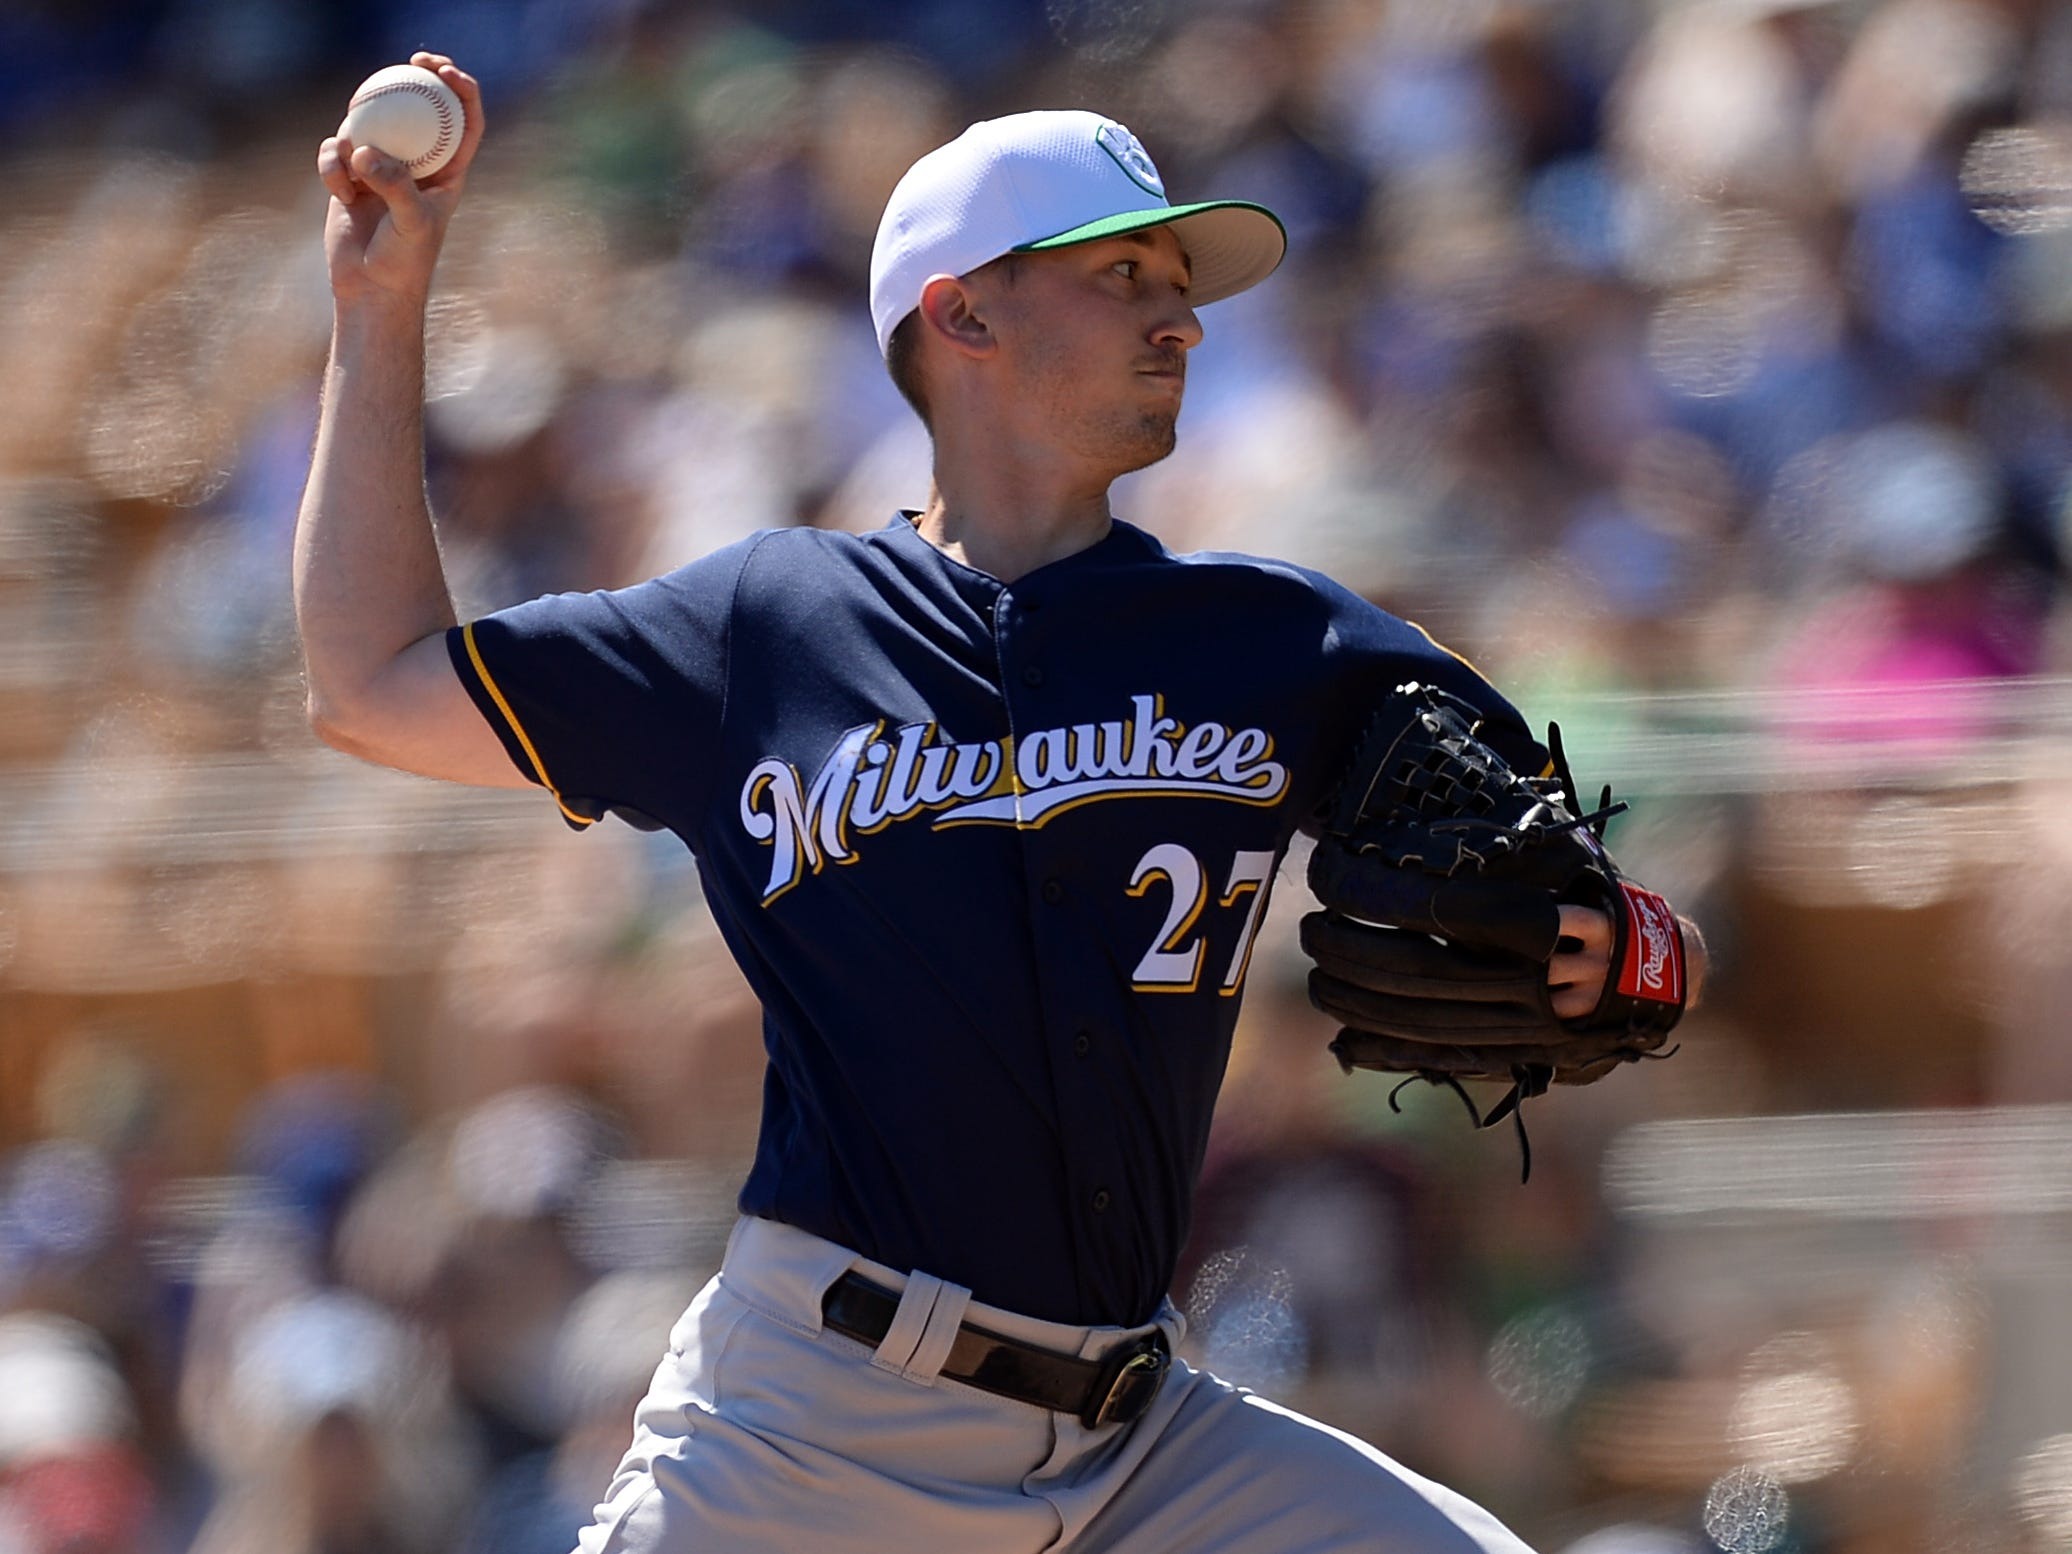 Brewers pitcher Zack Davies wishes he didn't trot out some mechanical changes in his delivery against the Dodgers on Sunday as he roughed up for six runs in 2 2/3 innings.